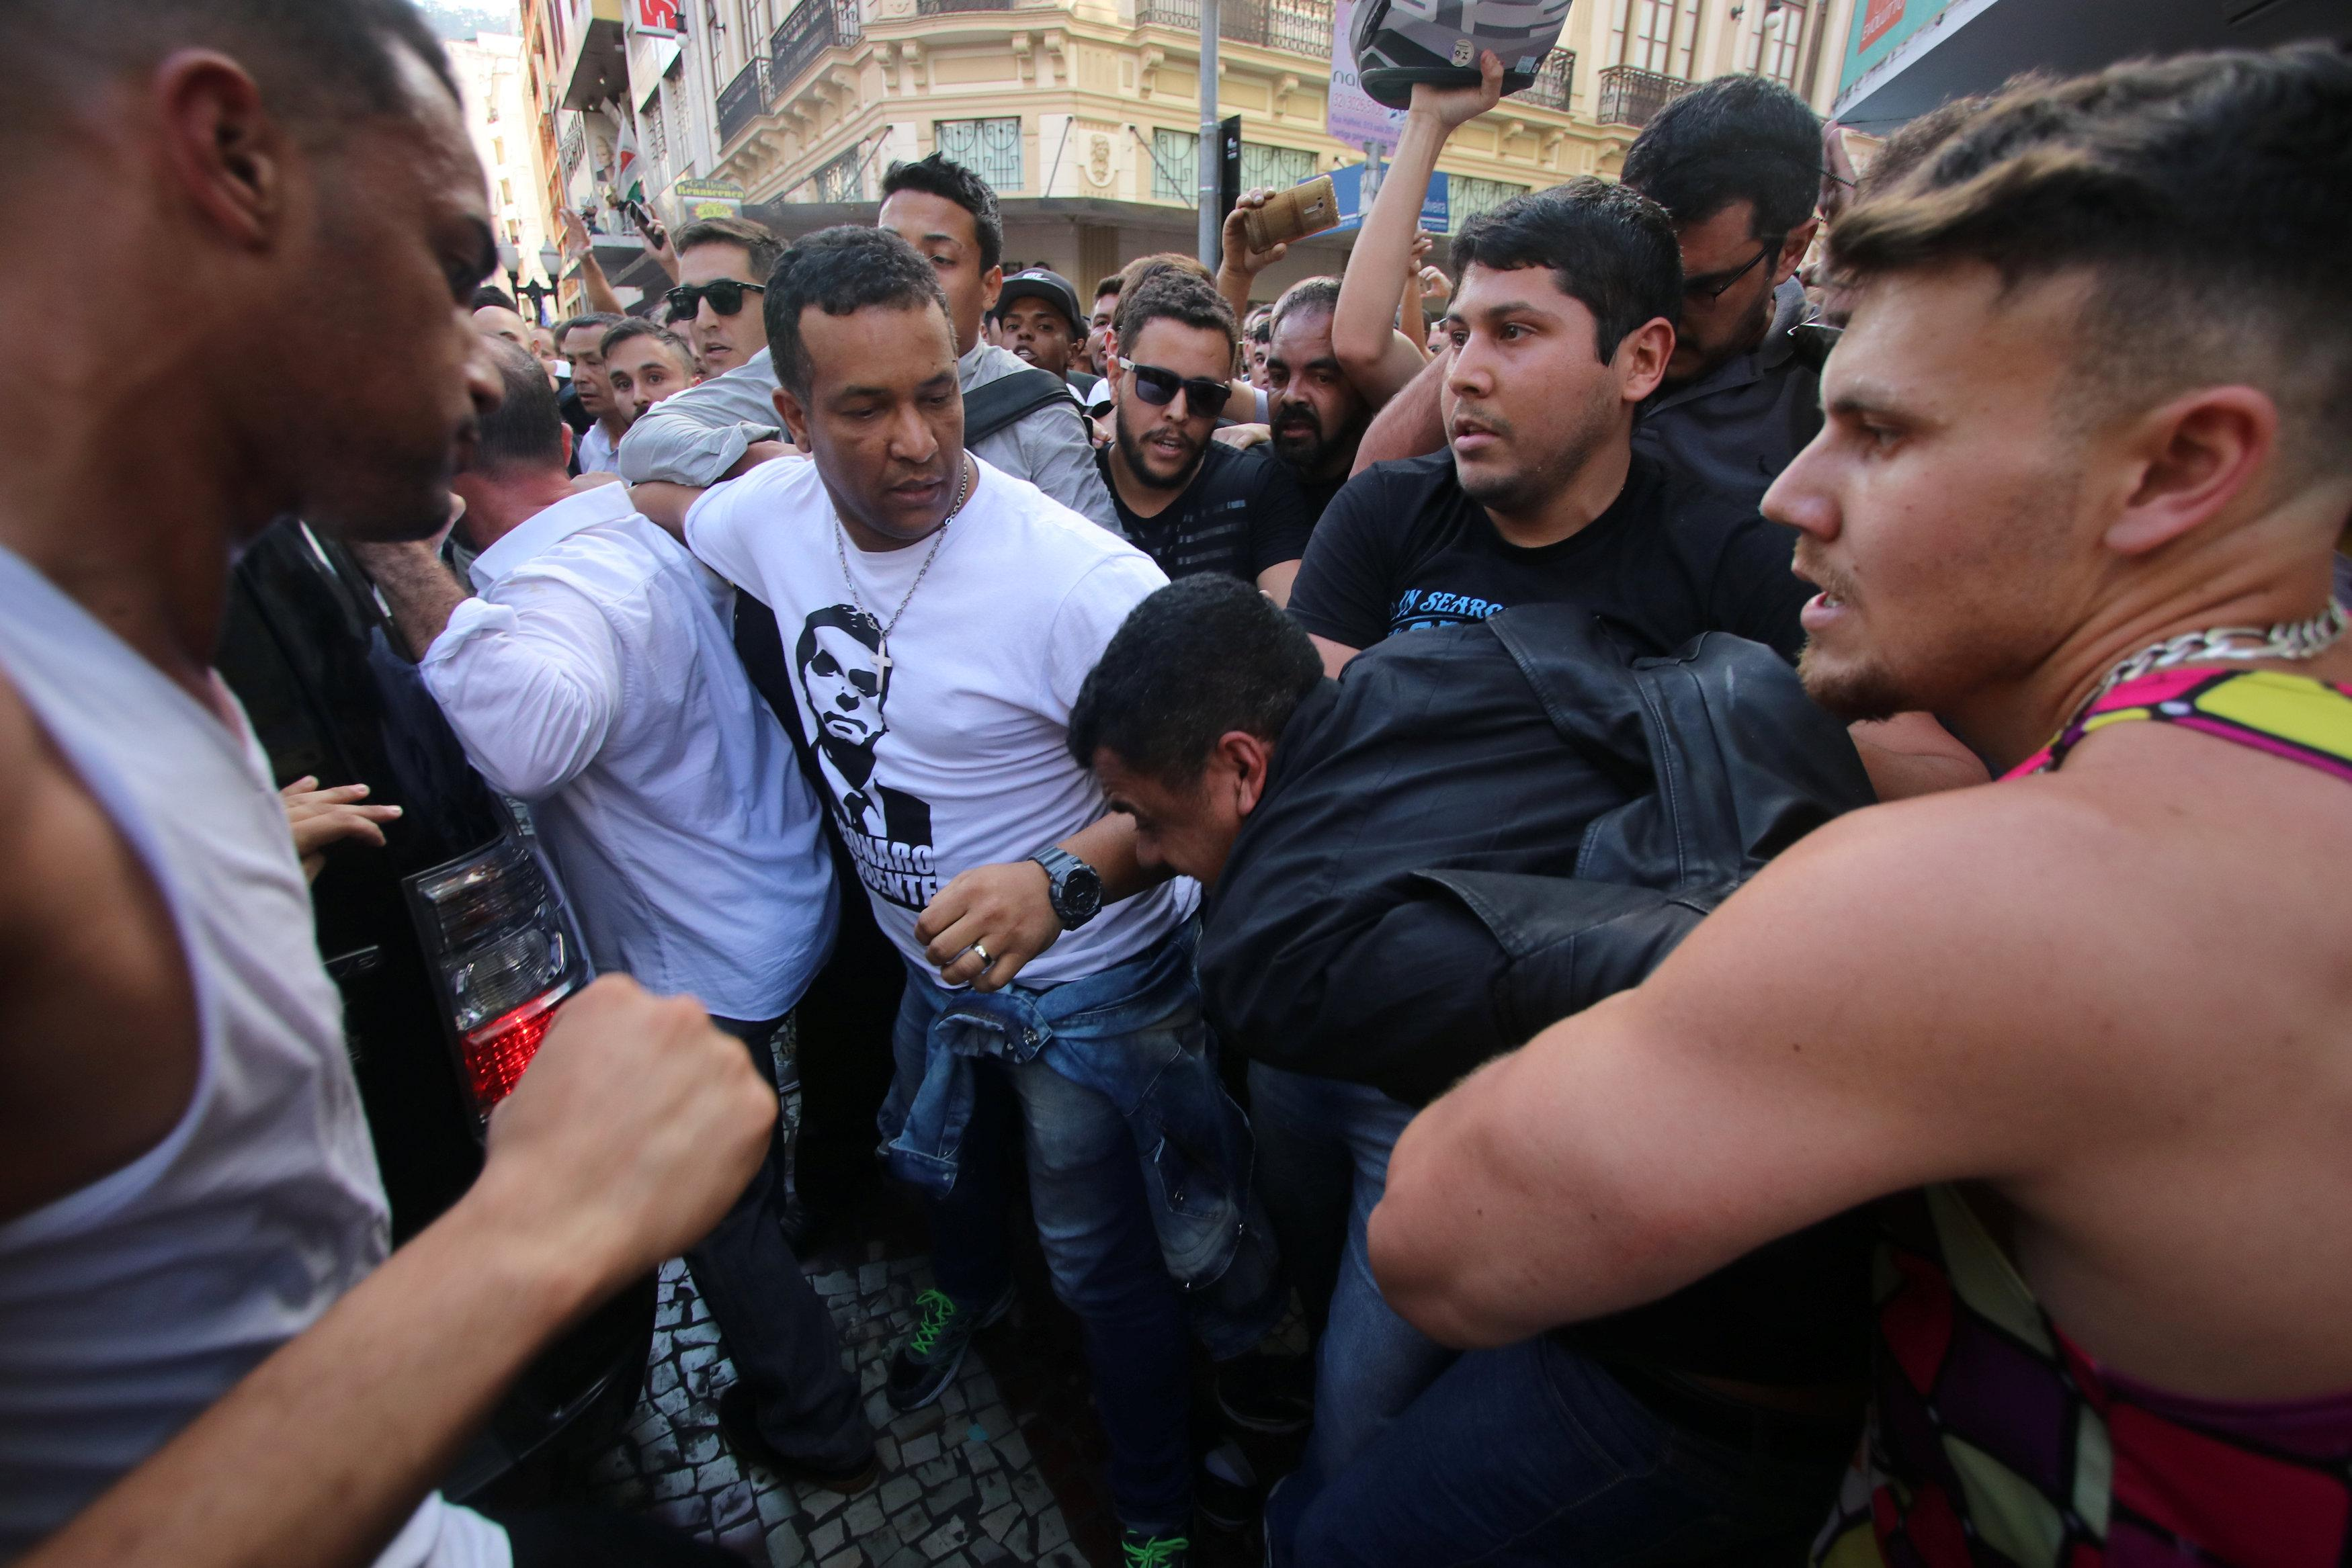 People surround a man suspected of stabbing Brazilian presidential candidate Jair Bolsonaro (not pictured) as he was campaigning in Juiz de Fora, Minas Gerais state, Brazil September 6, 2018. Felipe Couri / Minas Tribune / via